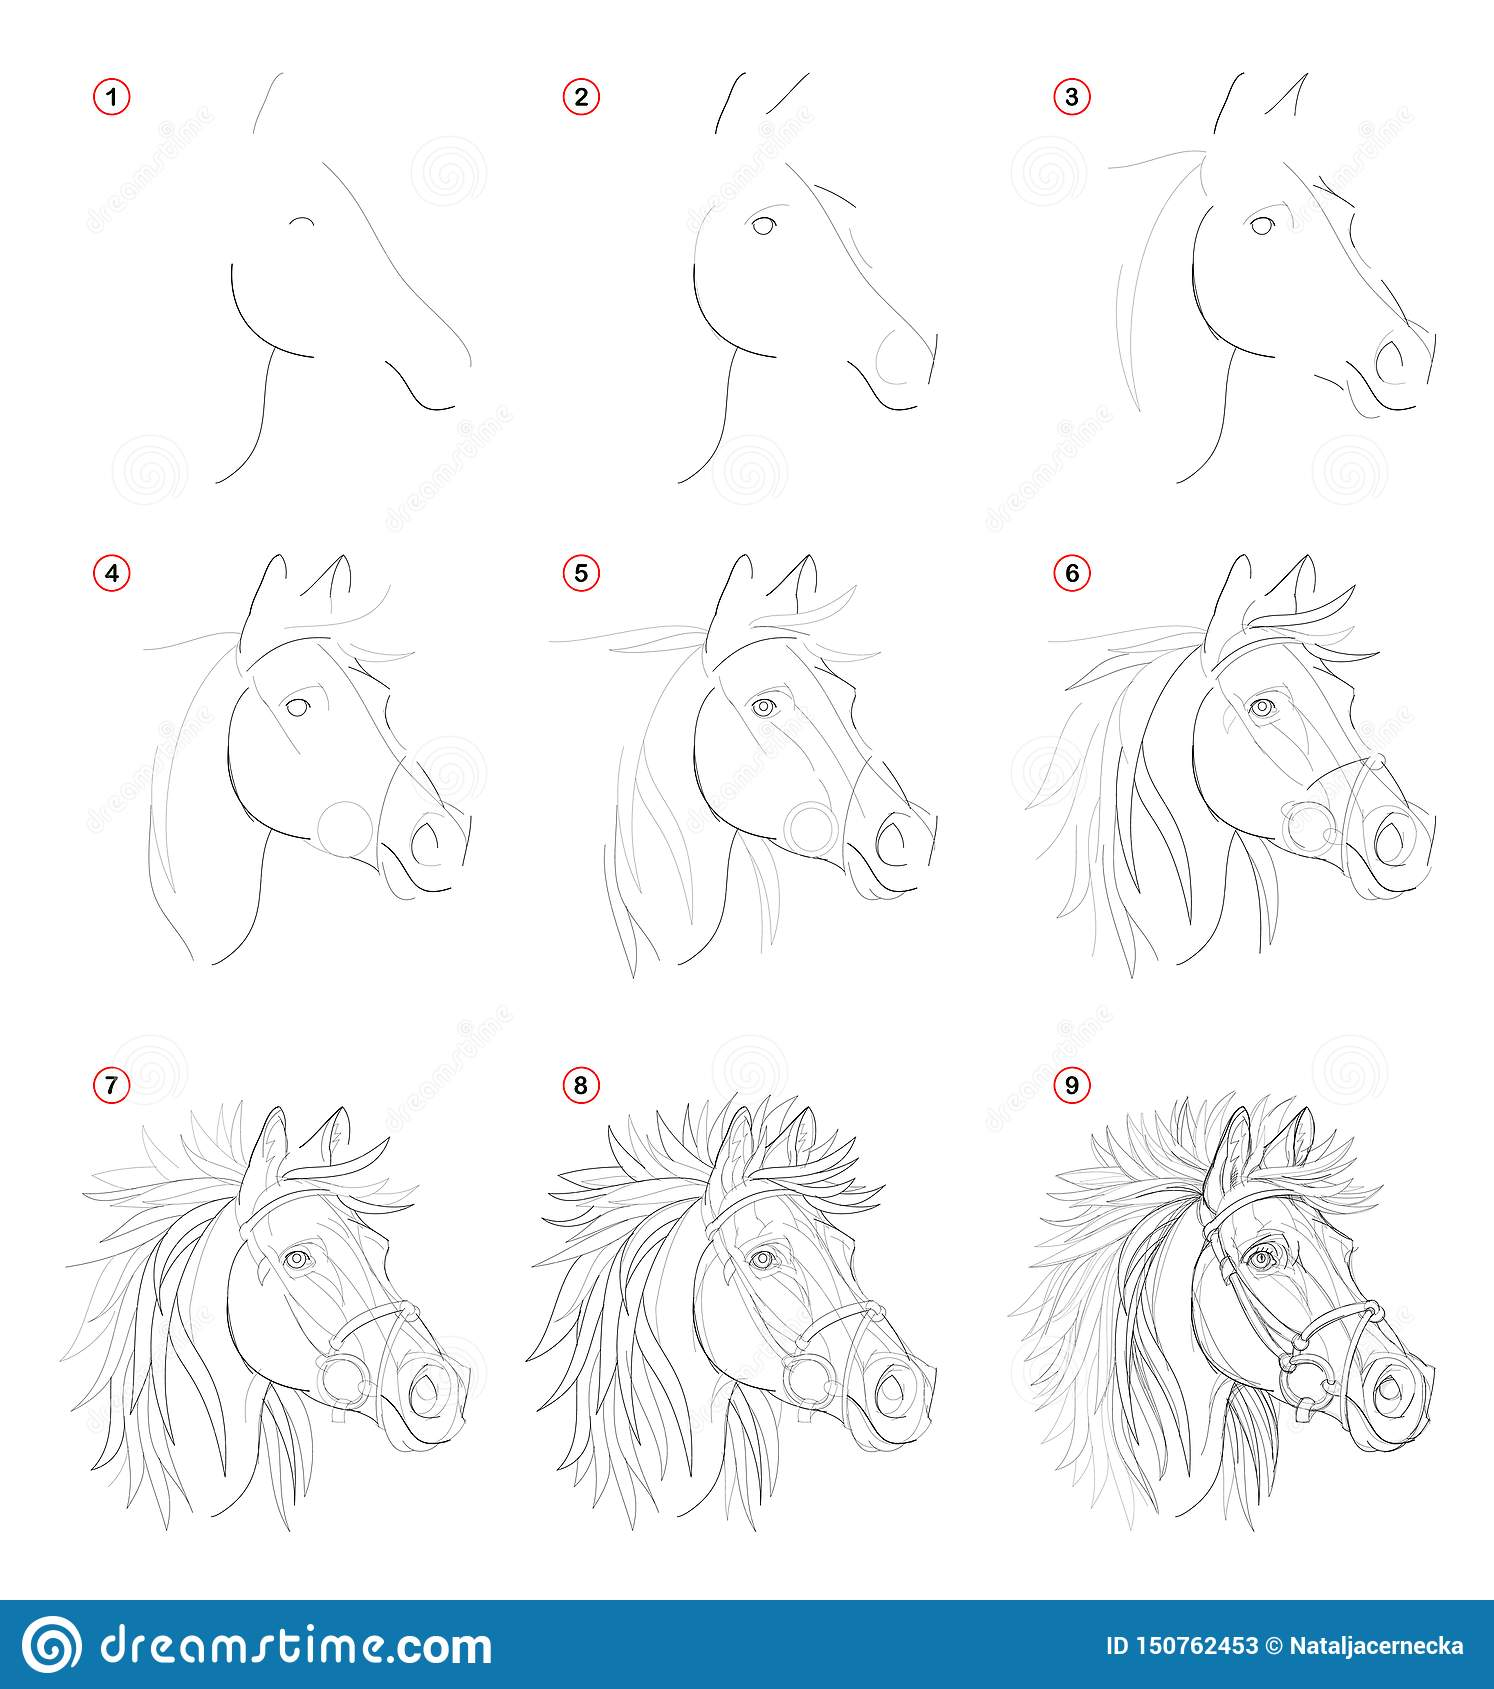 Creation Step By Step Pencil Drawing Page Shows How Learn To Draw Sketch Of Imaginary Horses Head Stock Vector Illustration Of Design Exercise 150762453